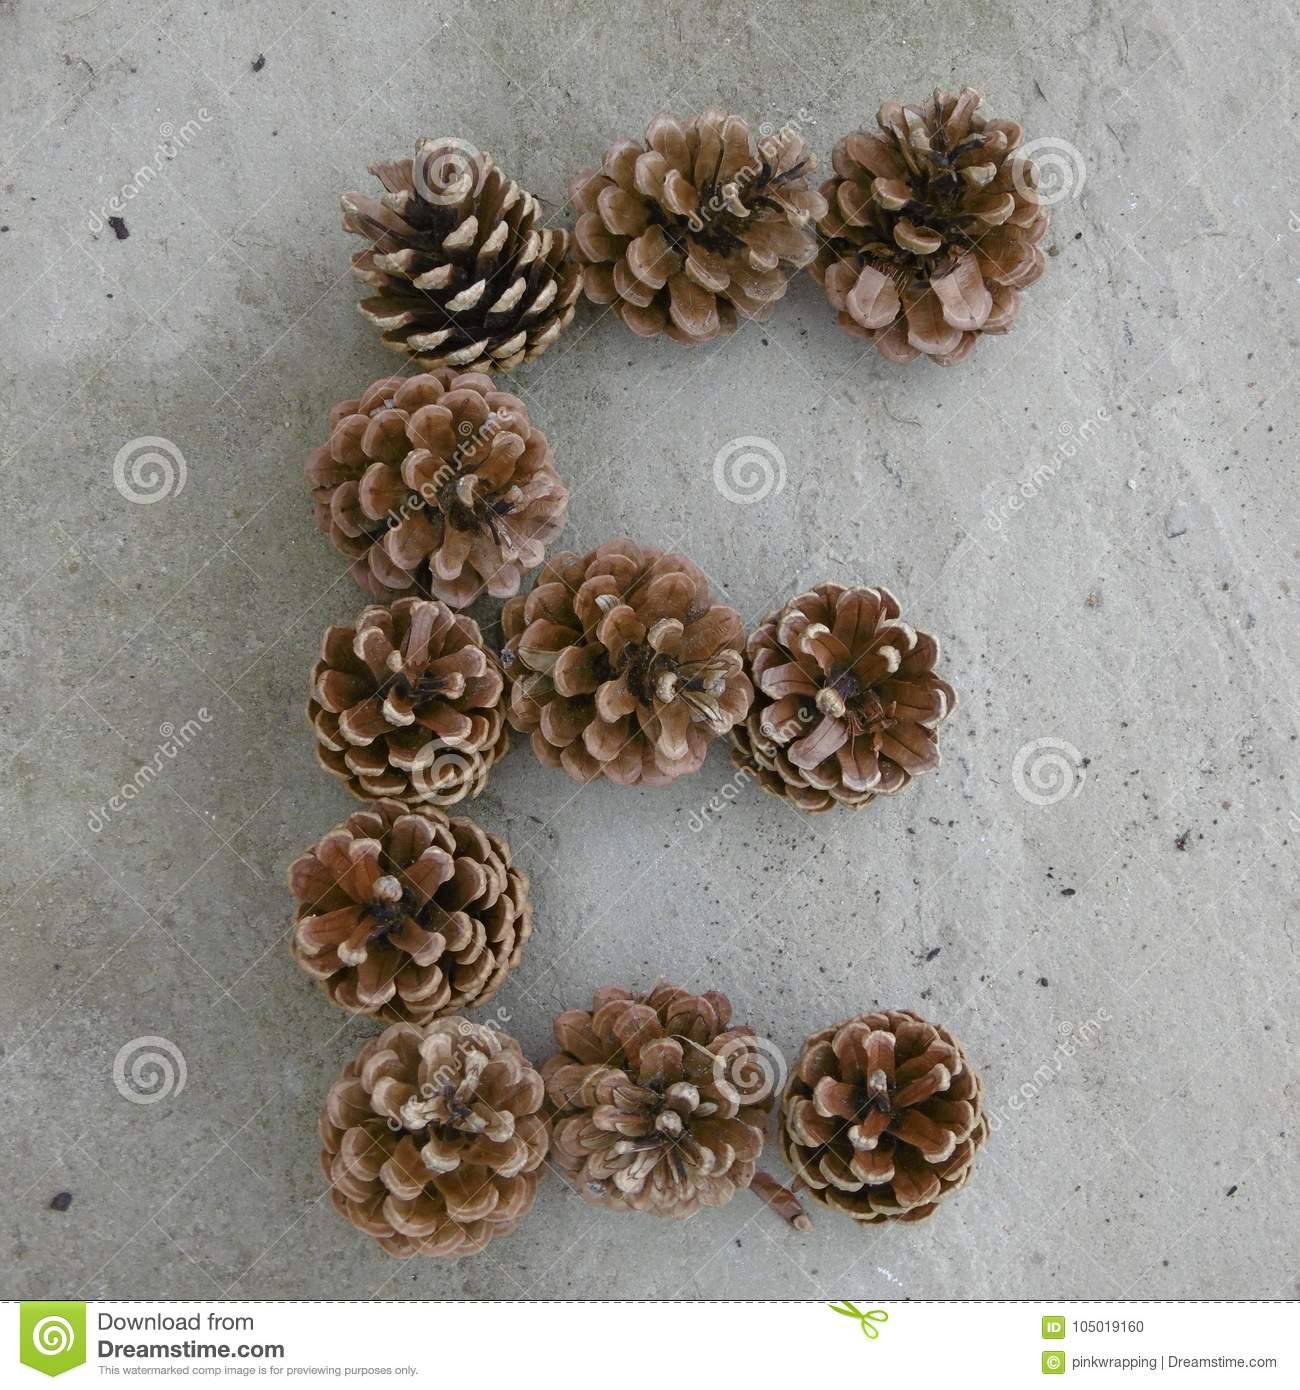 Letter E Made Out Of Pine Cones Stock Photo - Image of concretepaving,  grey: 105019160